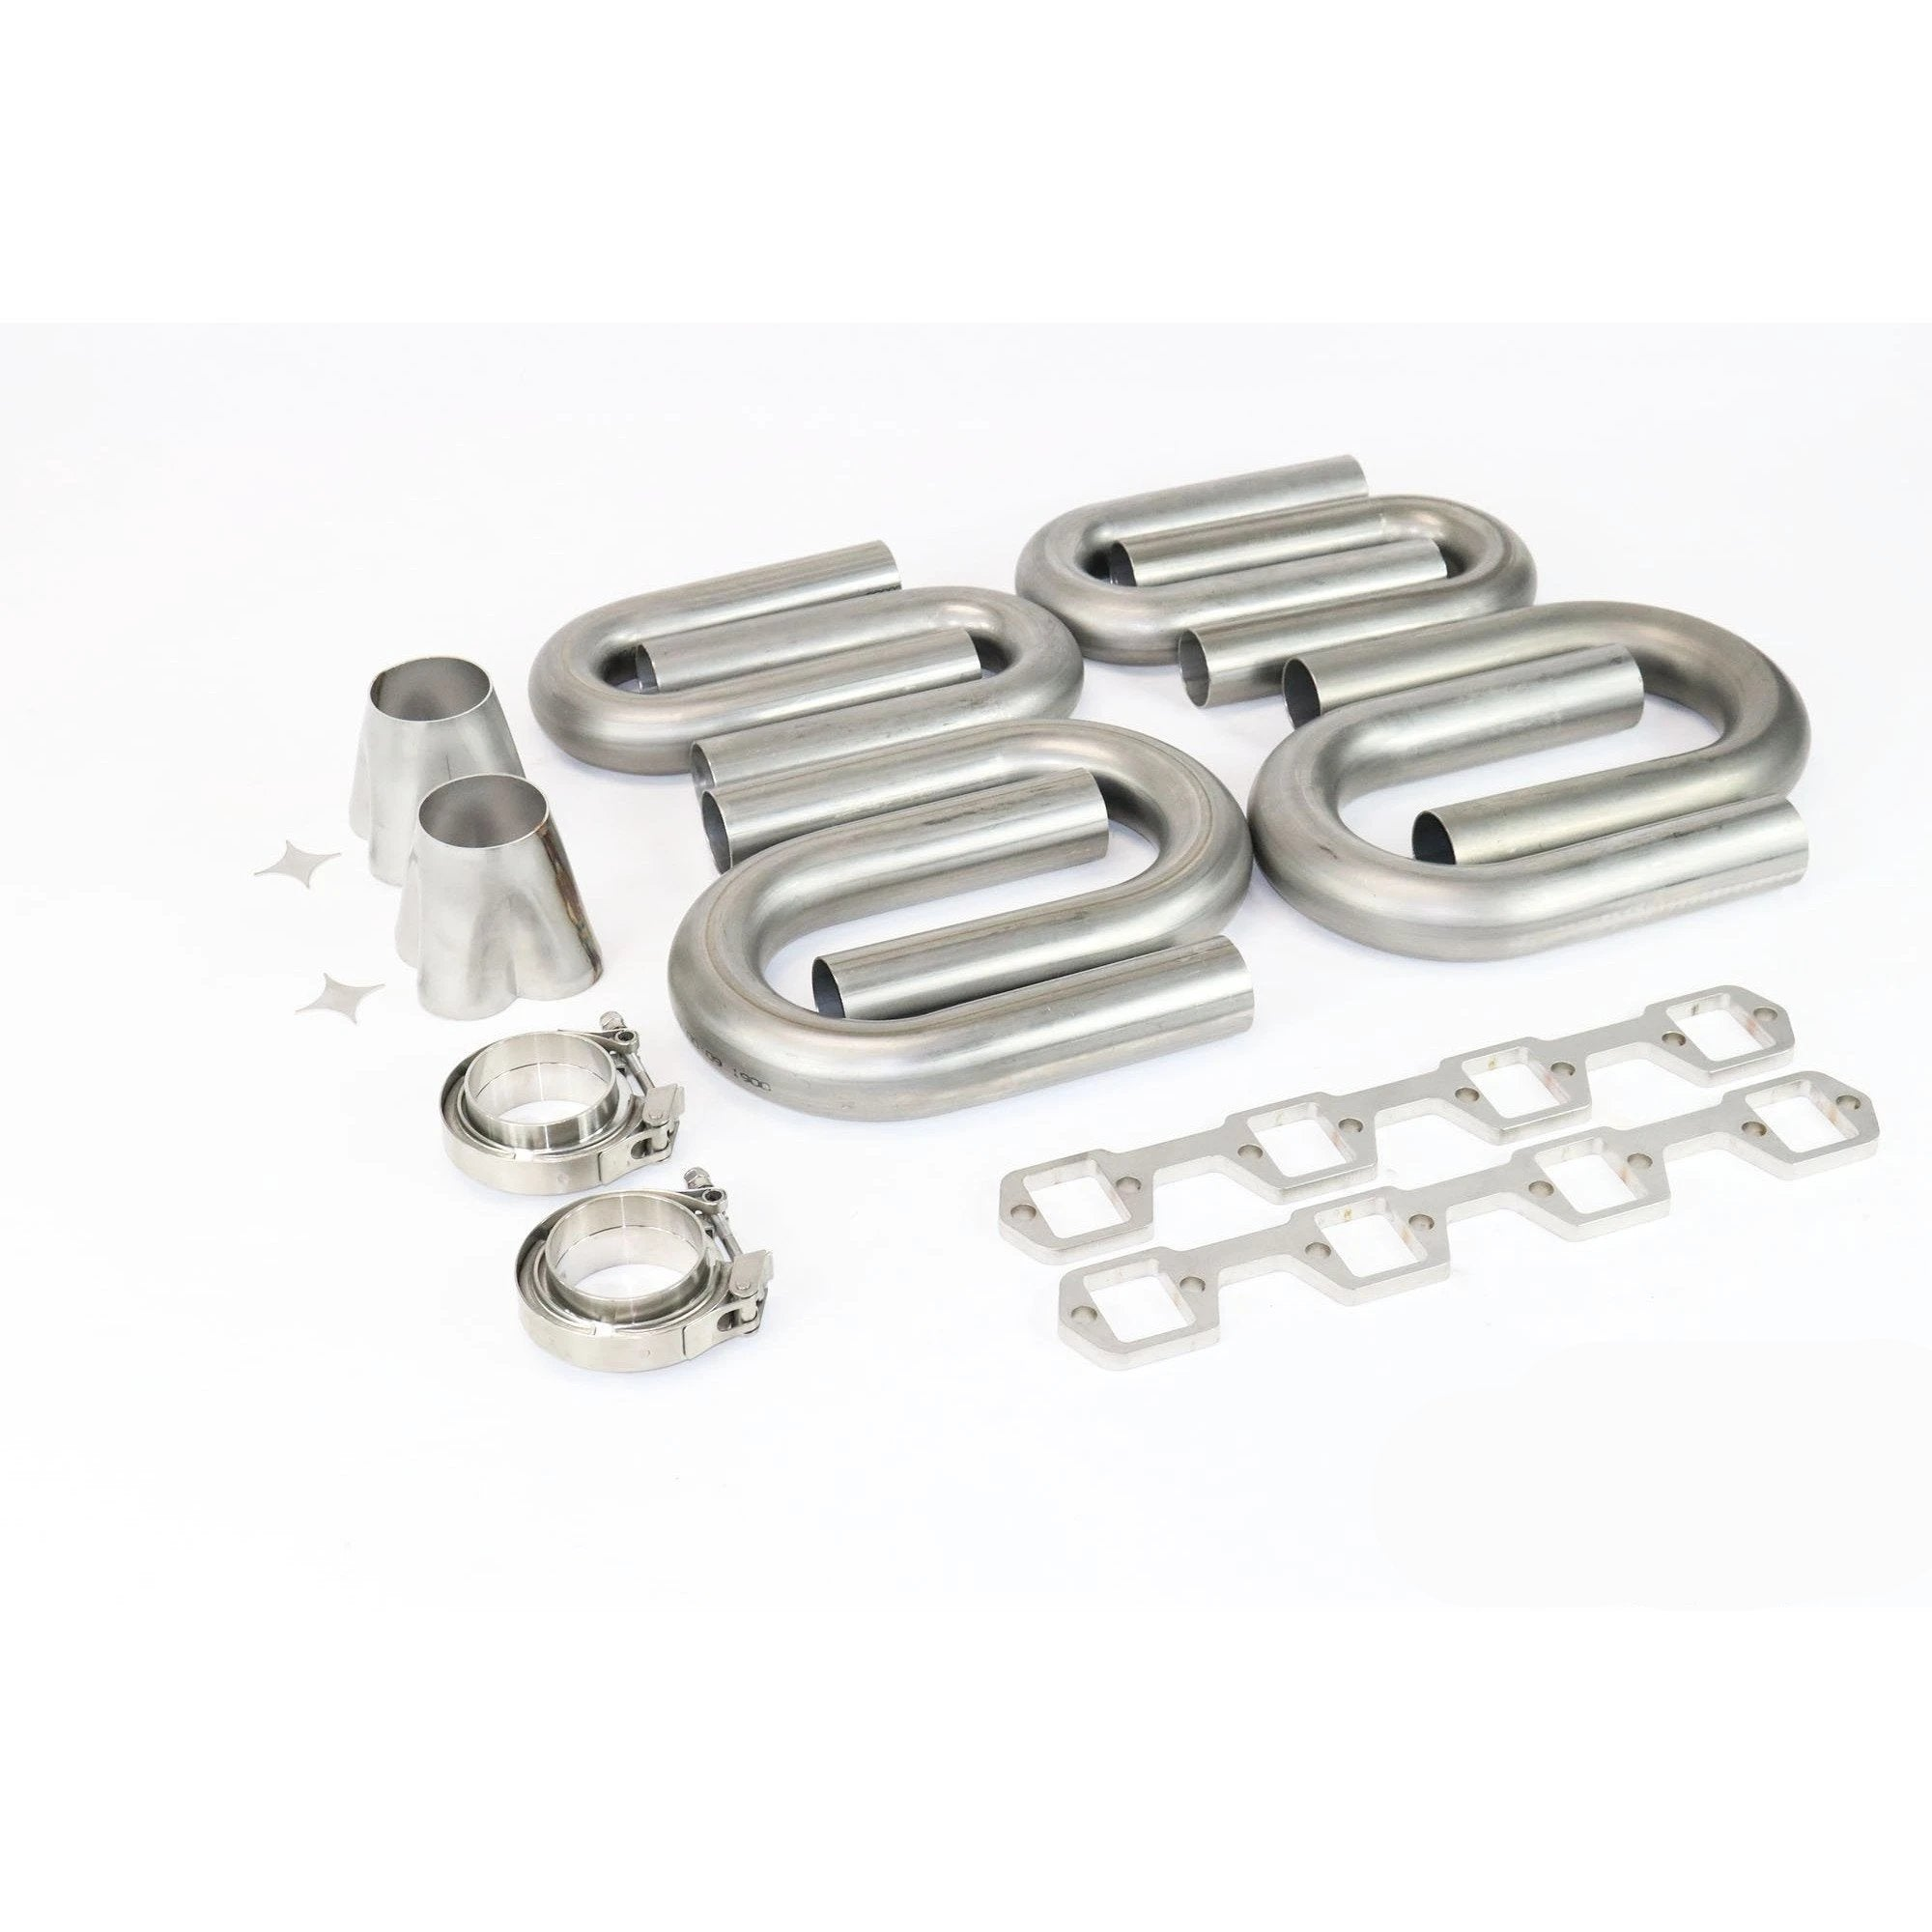 Ford SBF Windsor 304 Stainless Turbo Header Build Kit-Motion Raceworks-Motion Raceworks